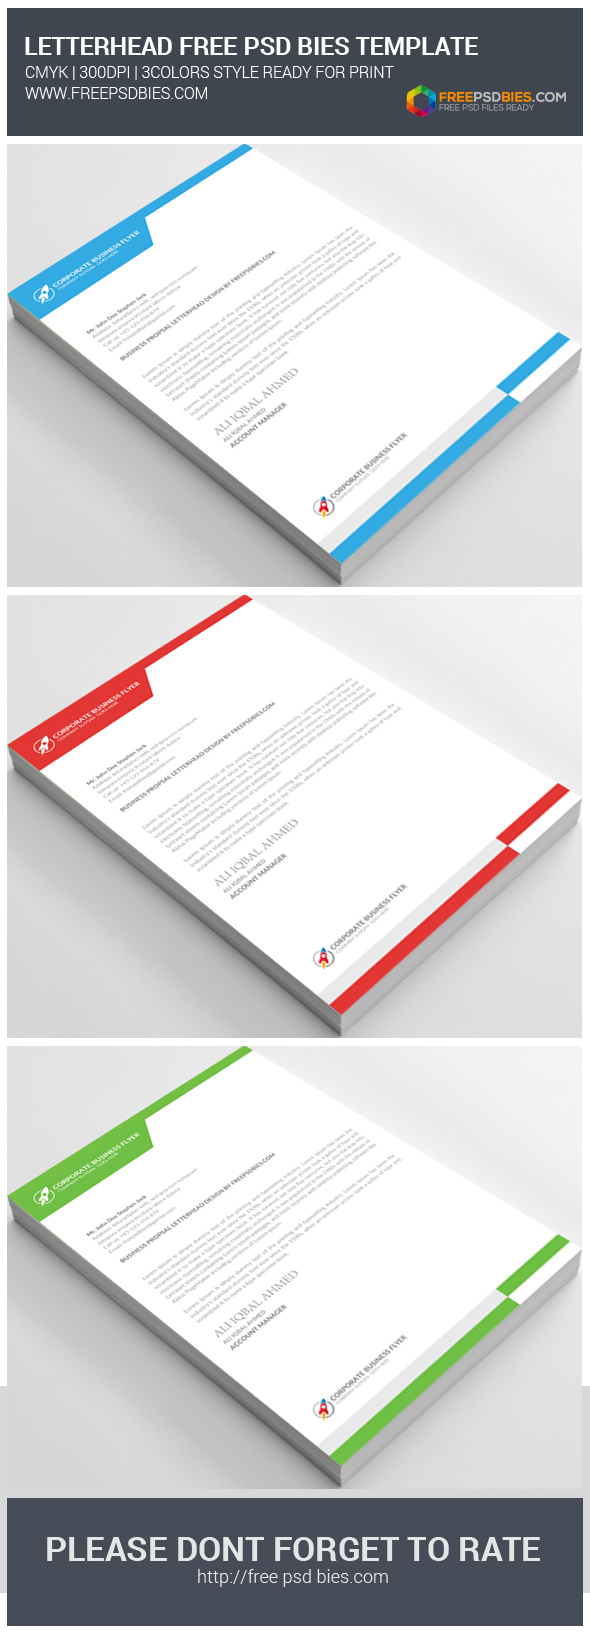 letterhead pad free psd download on behance